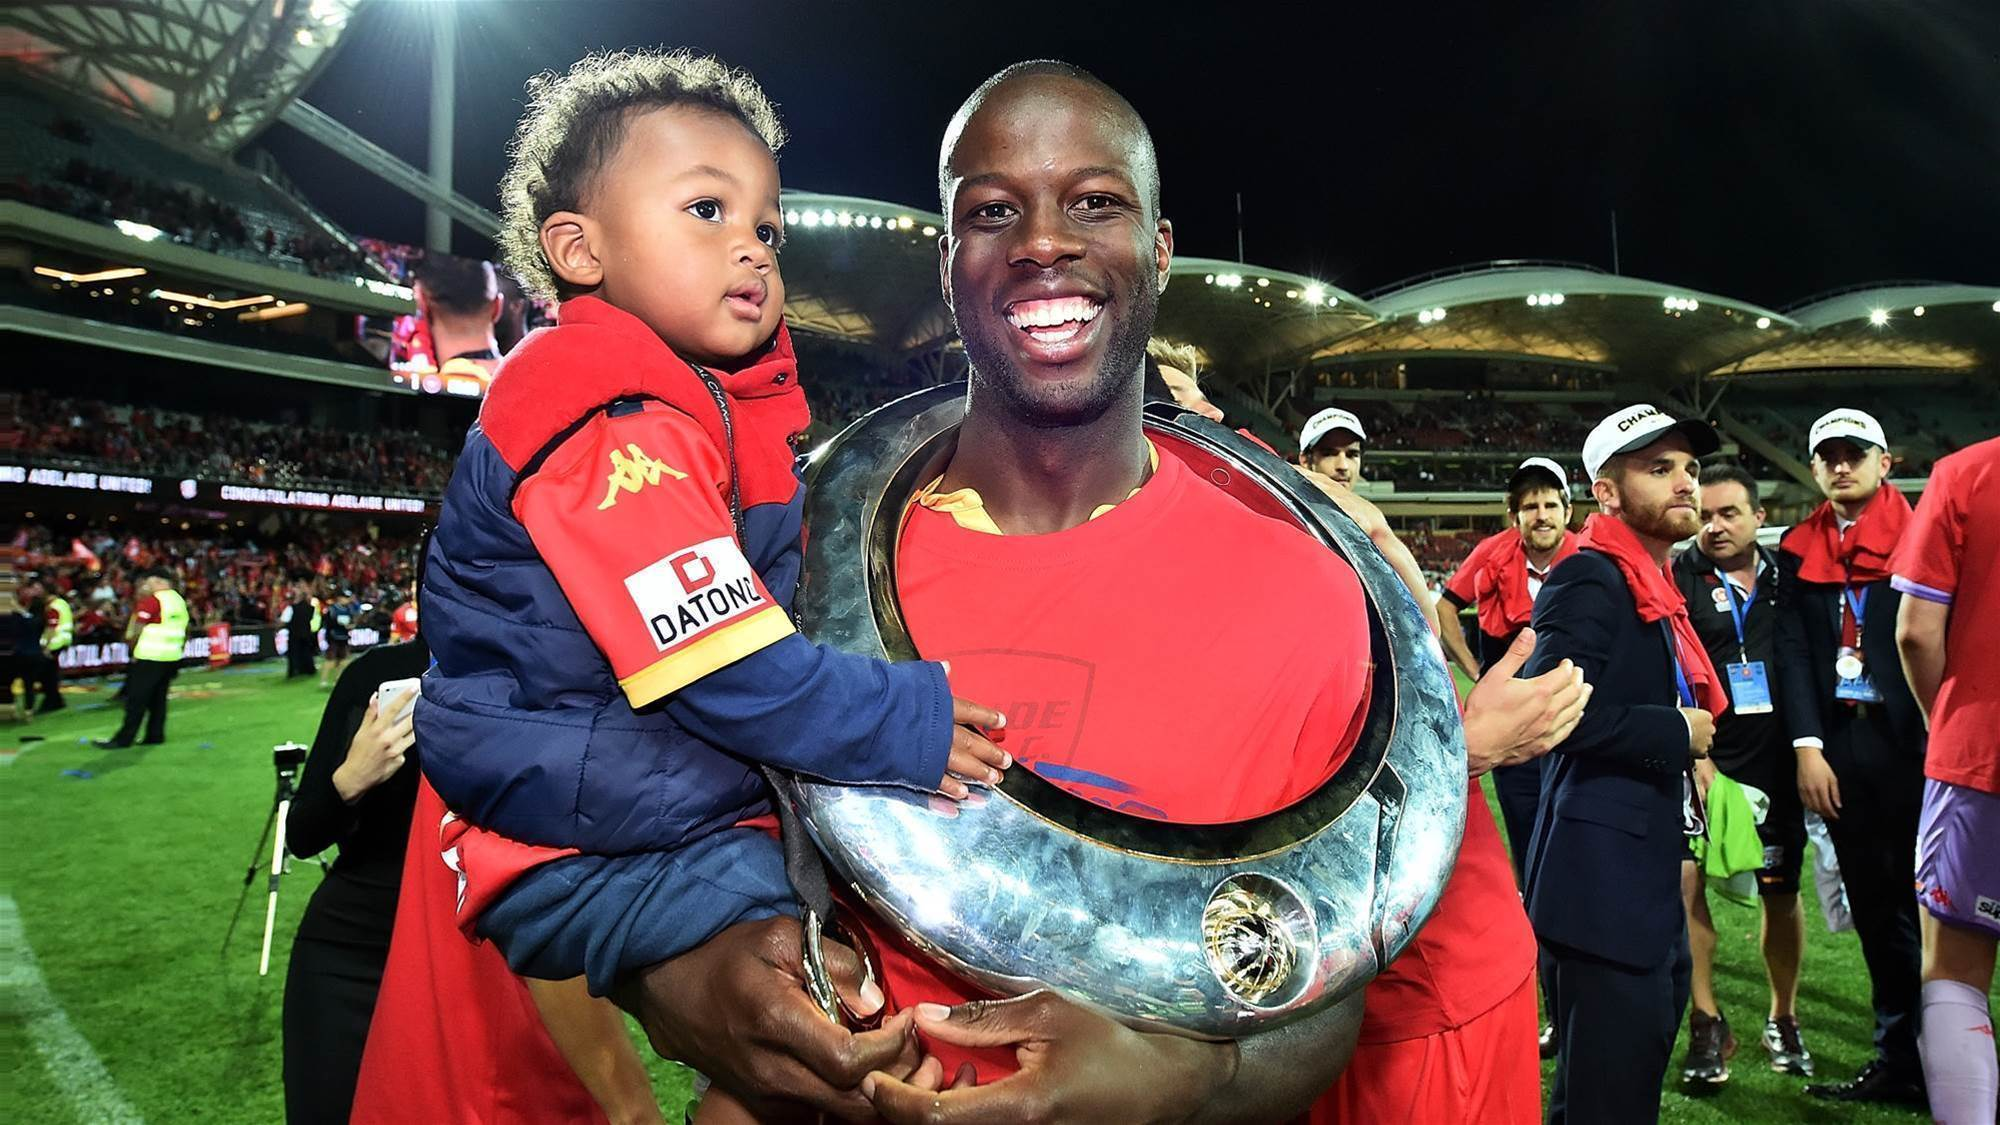 Djite: A-League - The Most Underpaid League